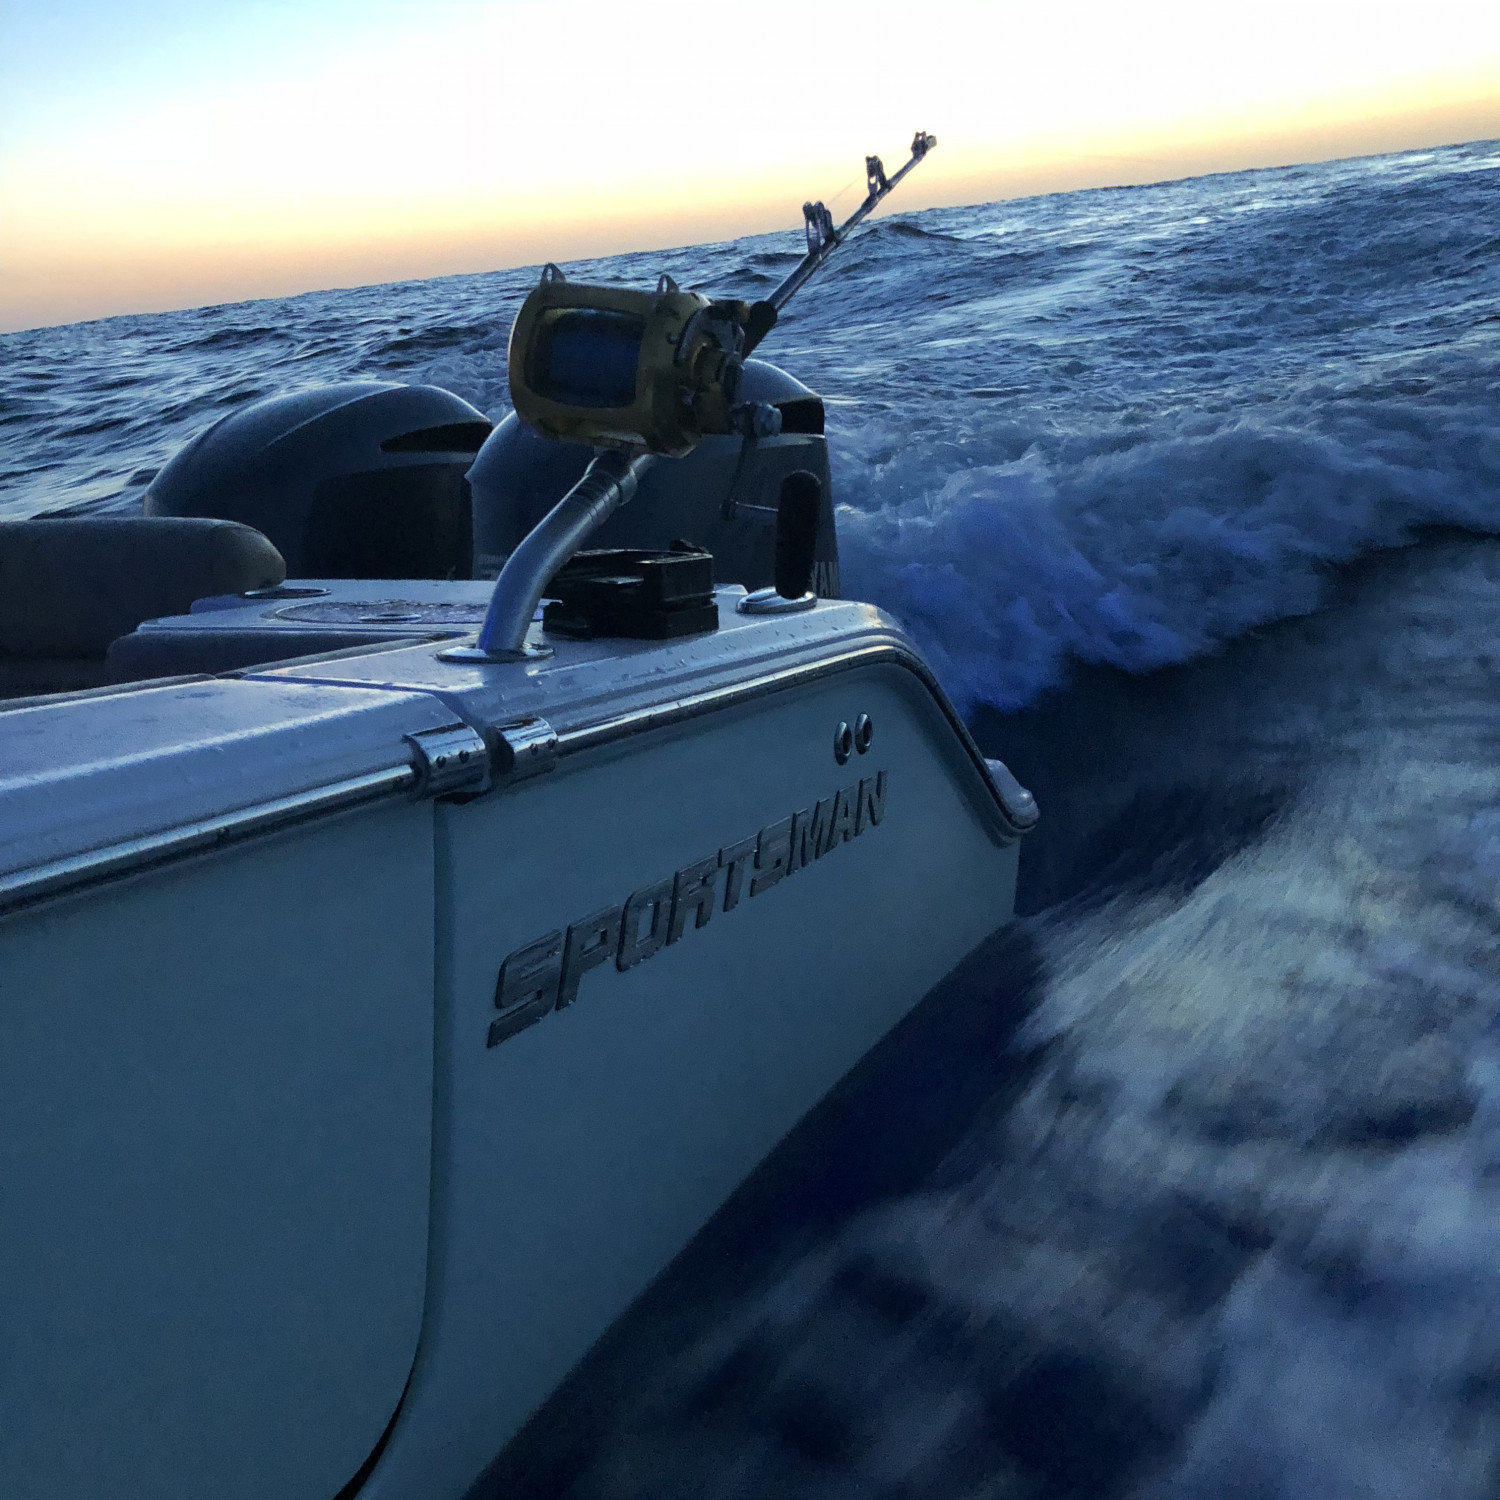 Title: Easter sunrise - On board their Sportsman Open 282 Center Console - Location: Gulf Stream out of little river, sc. Participating in the Photo Contest #SportsmanApril2018